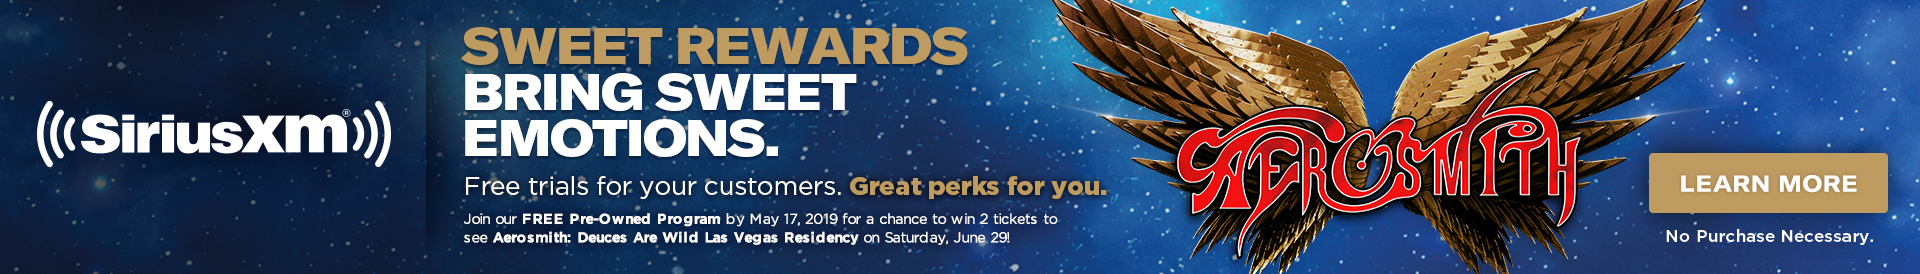 Join our FREE Pre-Owned Program by May 17, 2019 for a chance to win 2 tickets to see Aerosmith in Las Vegas on Saturday, June 29!